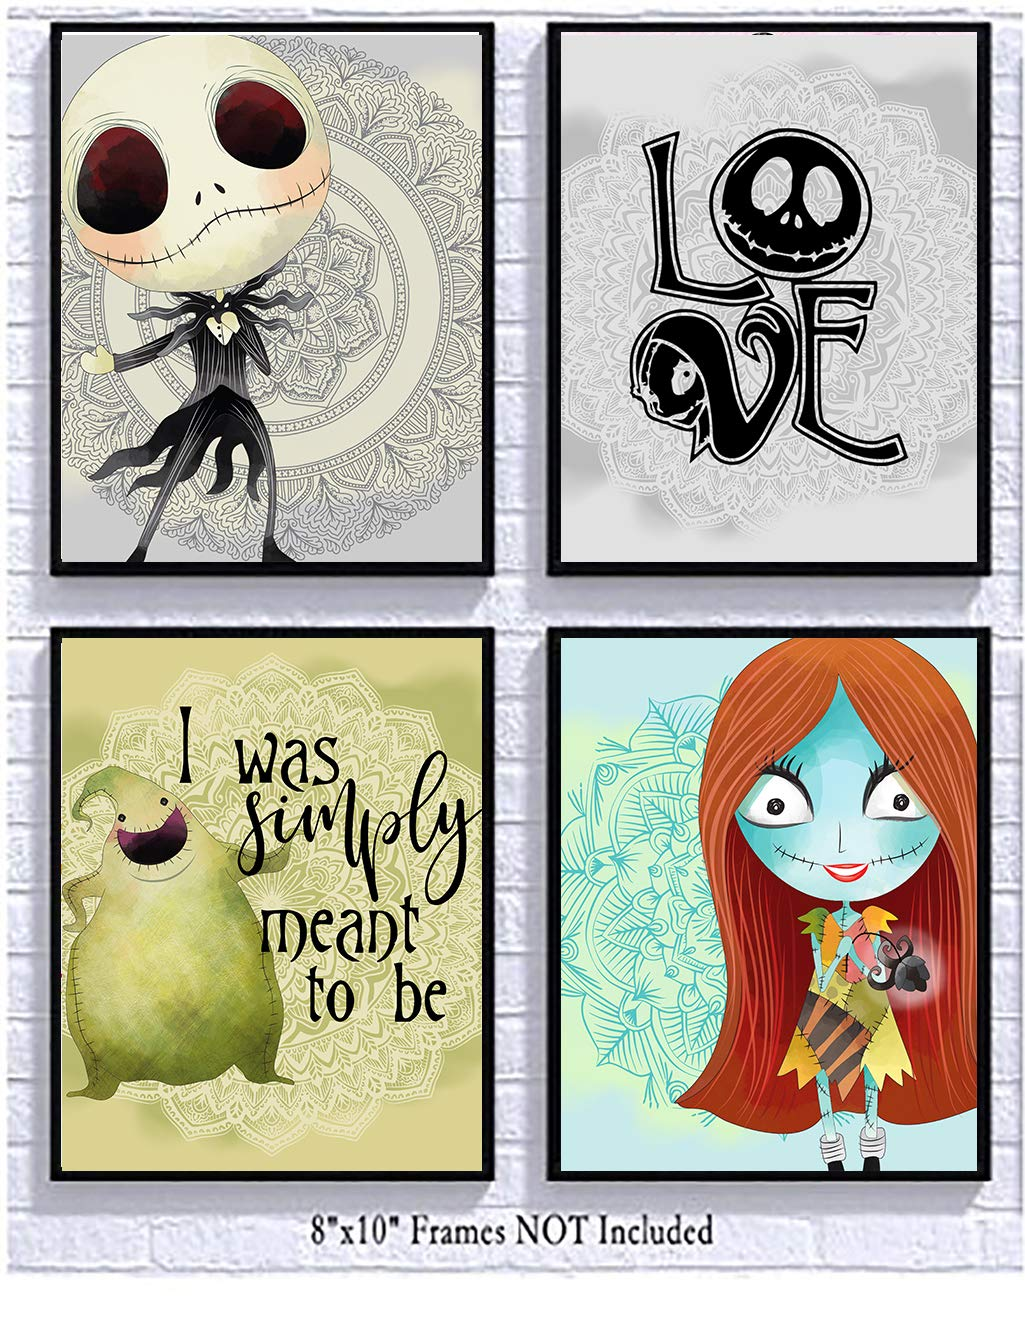 Silly Goose Gifts Nightmare Before Christmas Themed Character Wall Art Decor Baby Nursery Love (4pc Love Art Set)